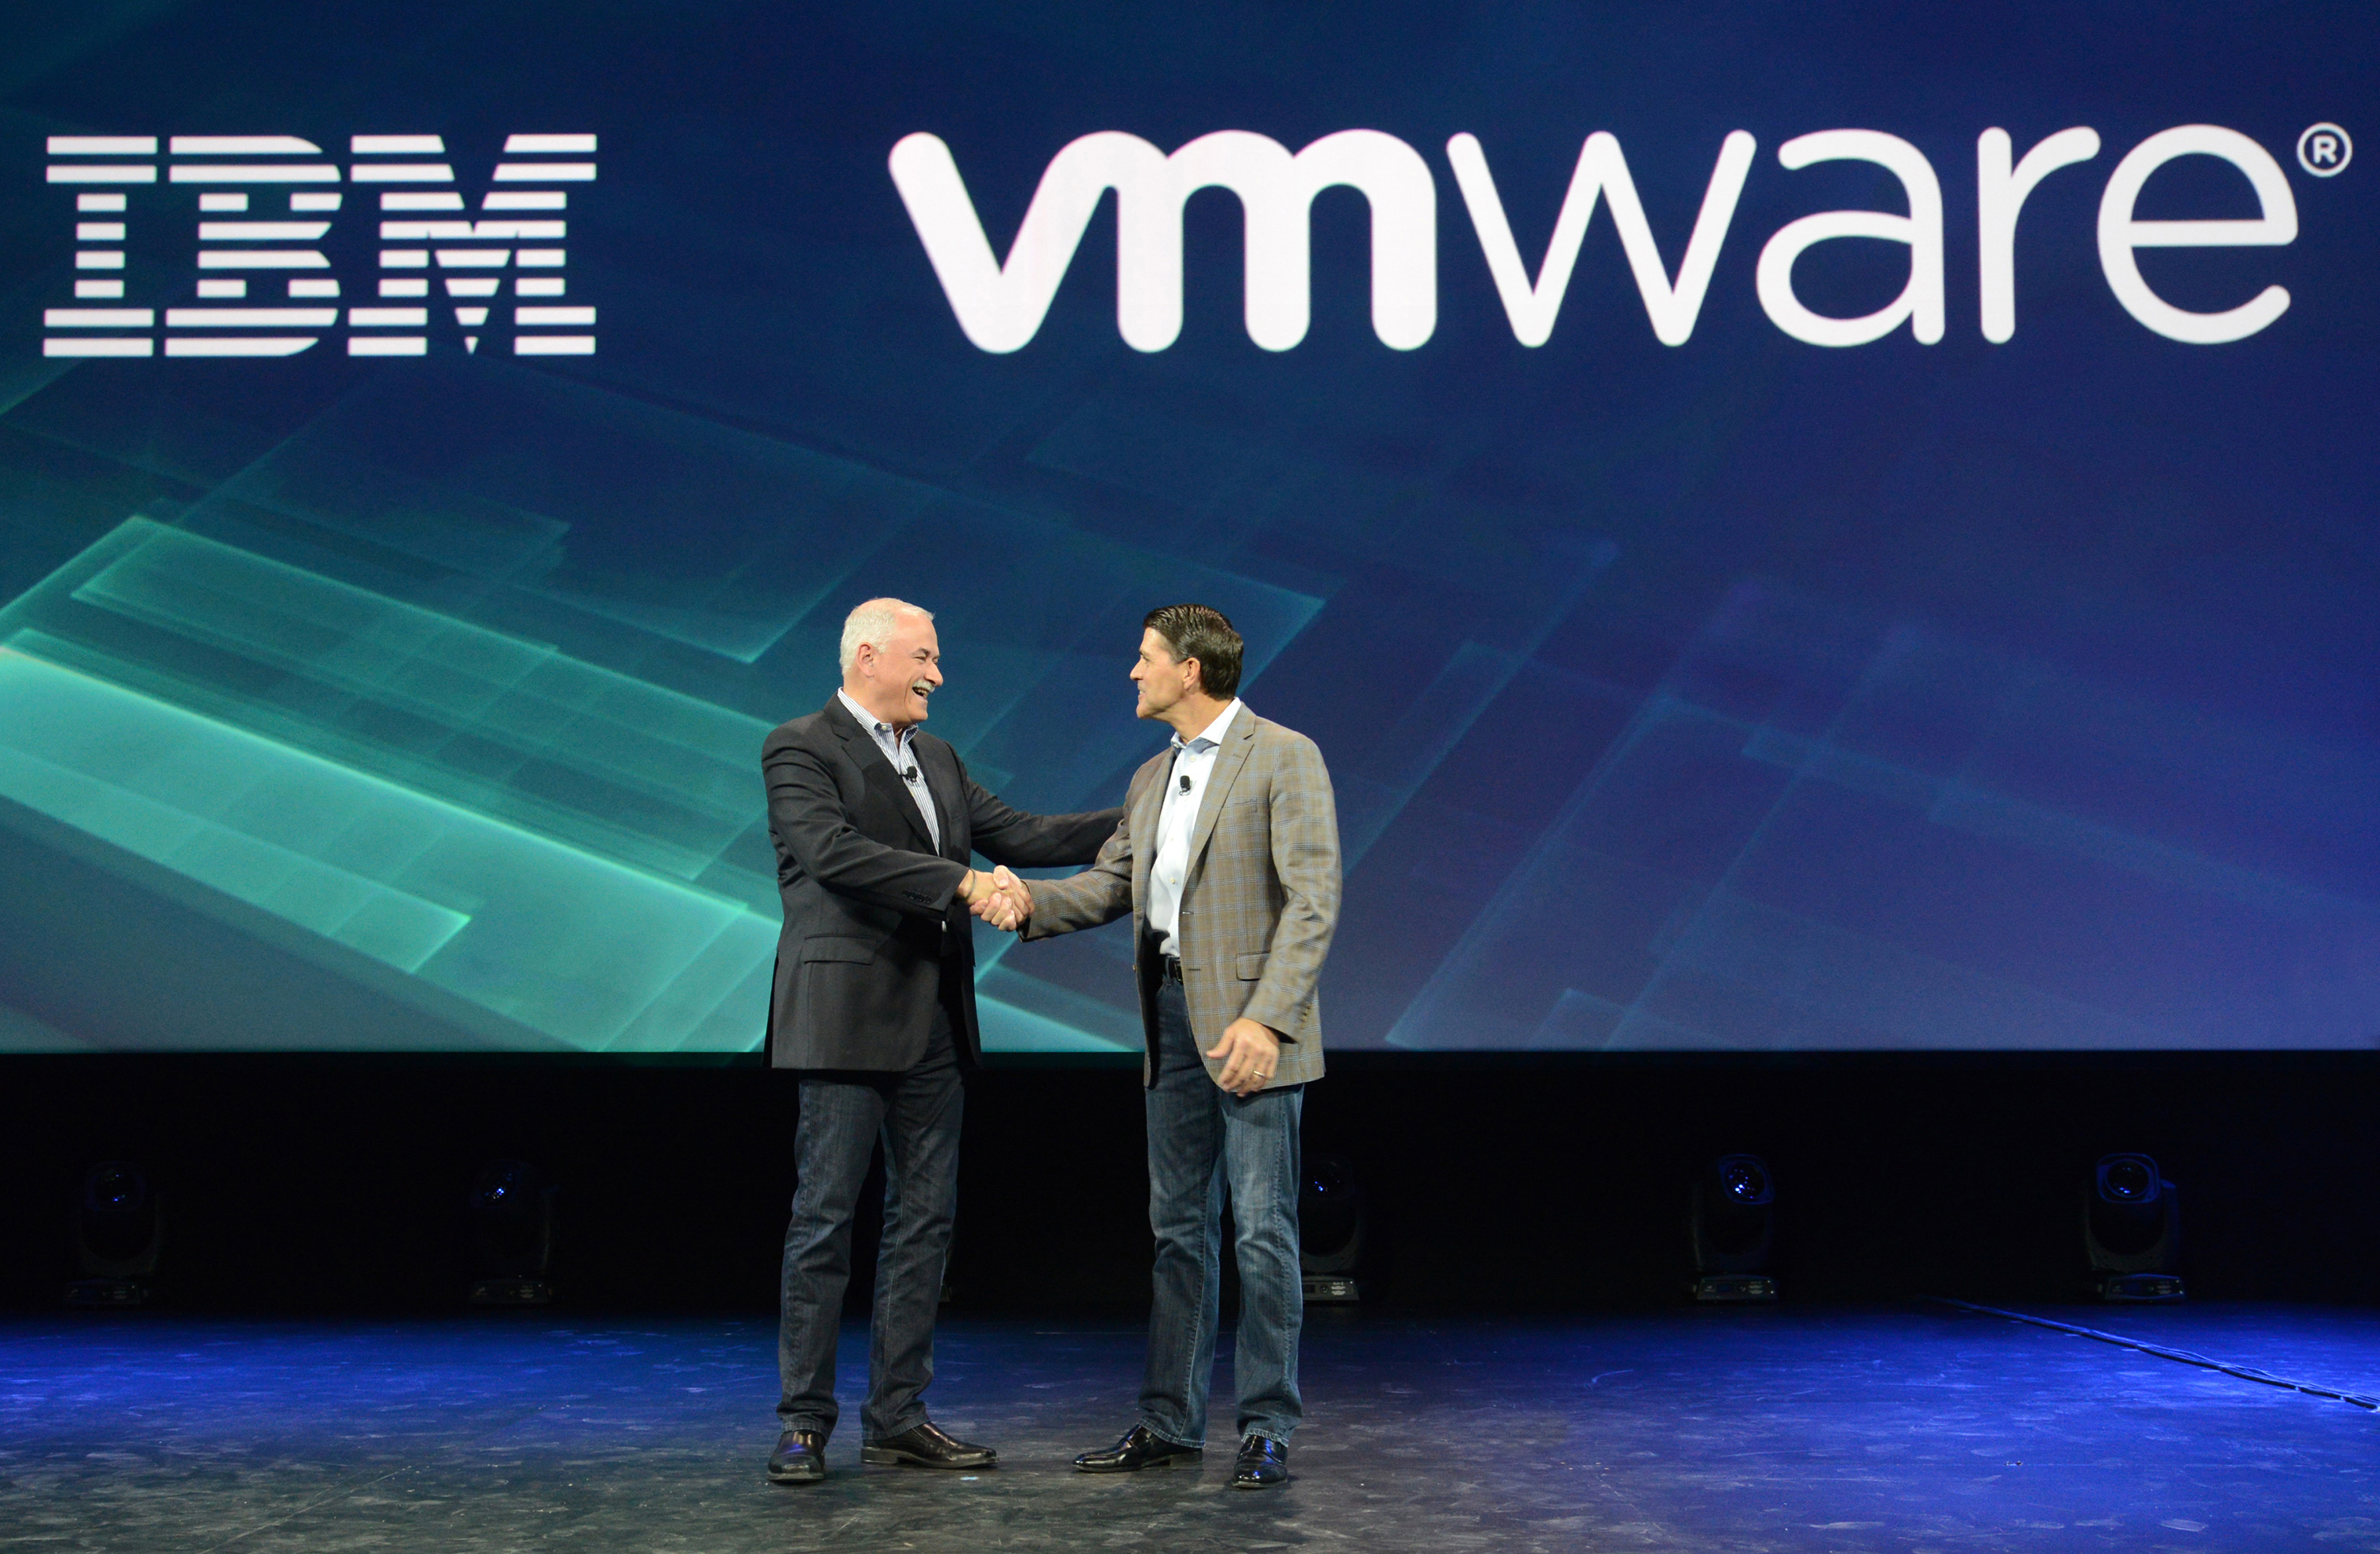 Pat Gelsinger, CEO von VMware und Robert LeBlanc, SVP der IBM Cloud geben auf der InterConnect in Las Vegas die Partnerschaft ihrer jeweiligen Unternehmen bekannt. (Bild: Alan M Rosenberg/Feature Photo Service for IBM)